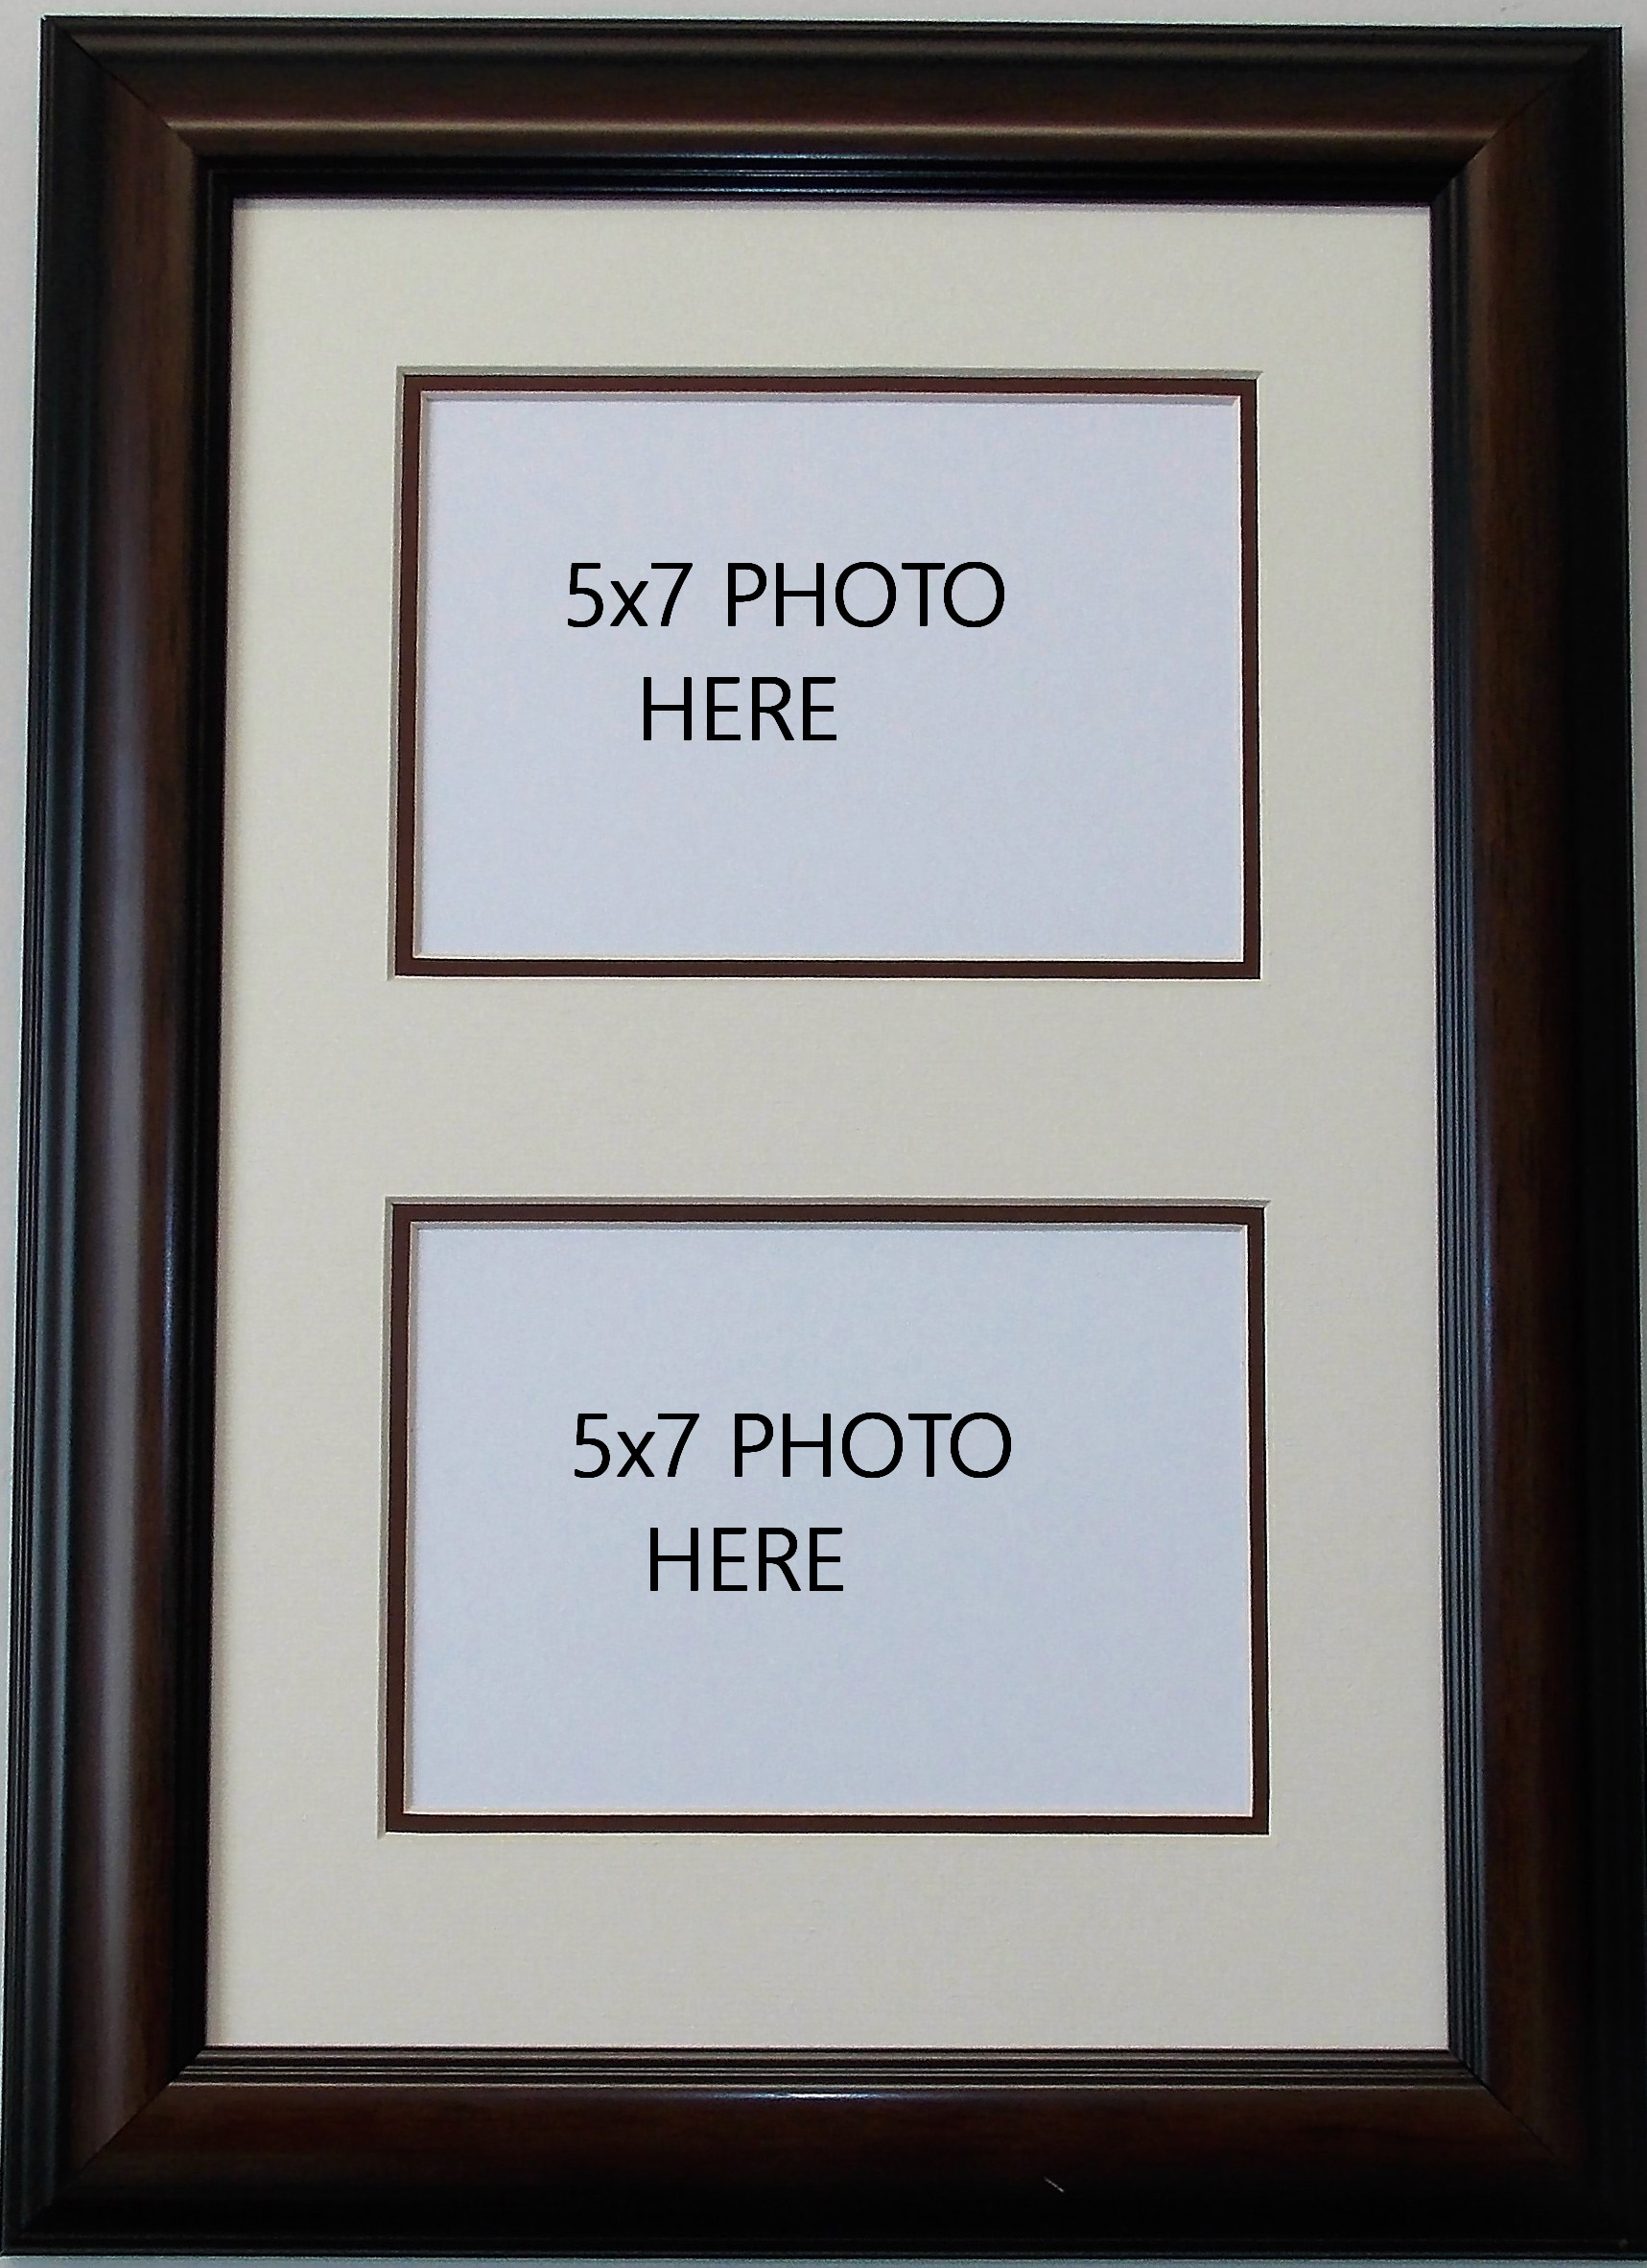 Home Tabletop Wall Mount Frames Photo 5x7 Openings Double Multimat Holds Two 2 Photos